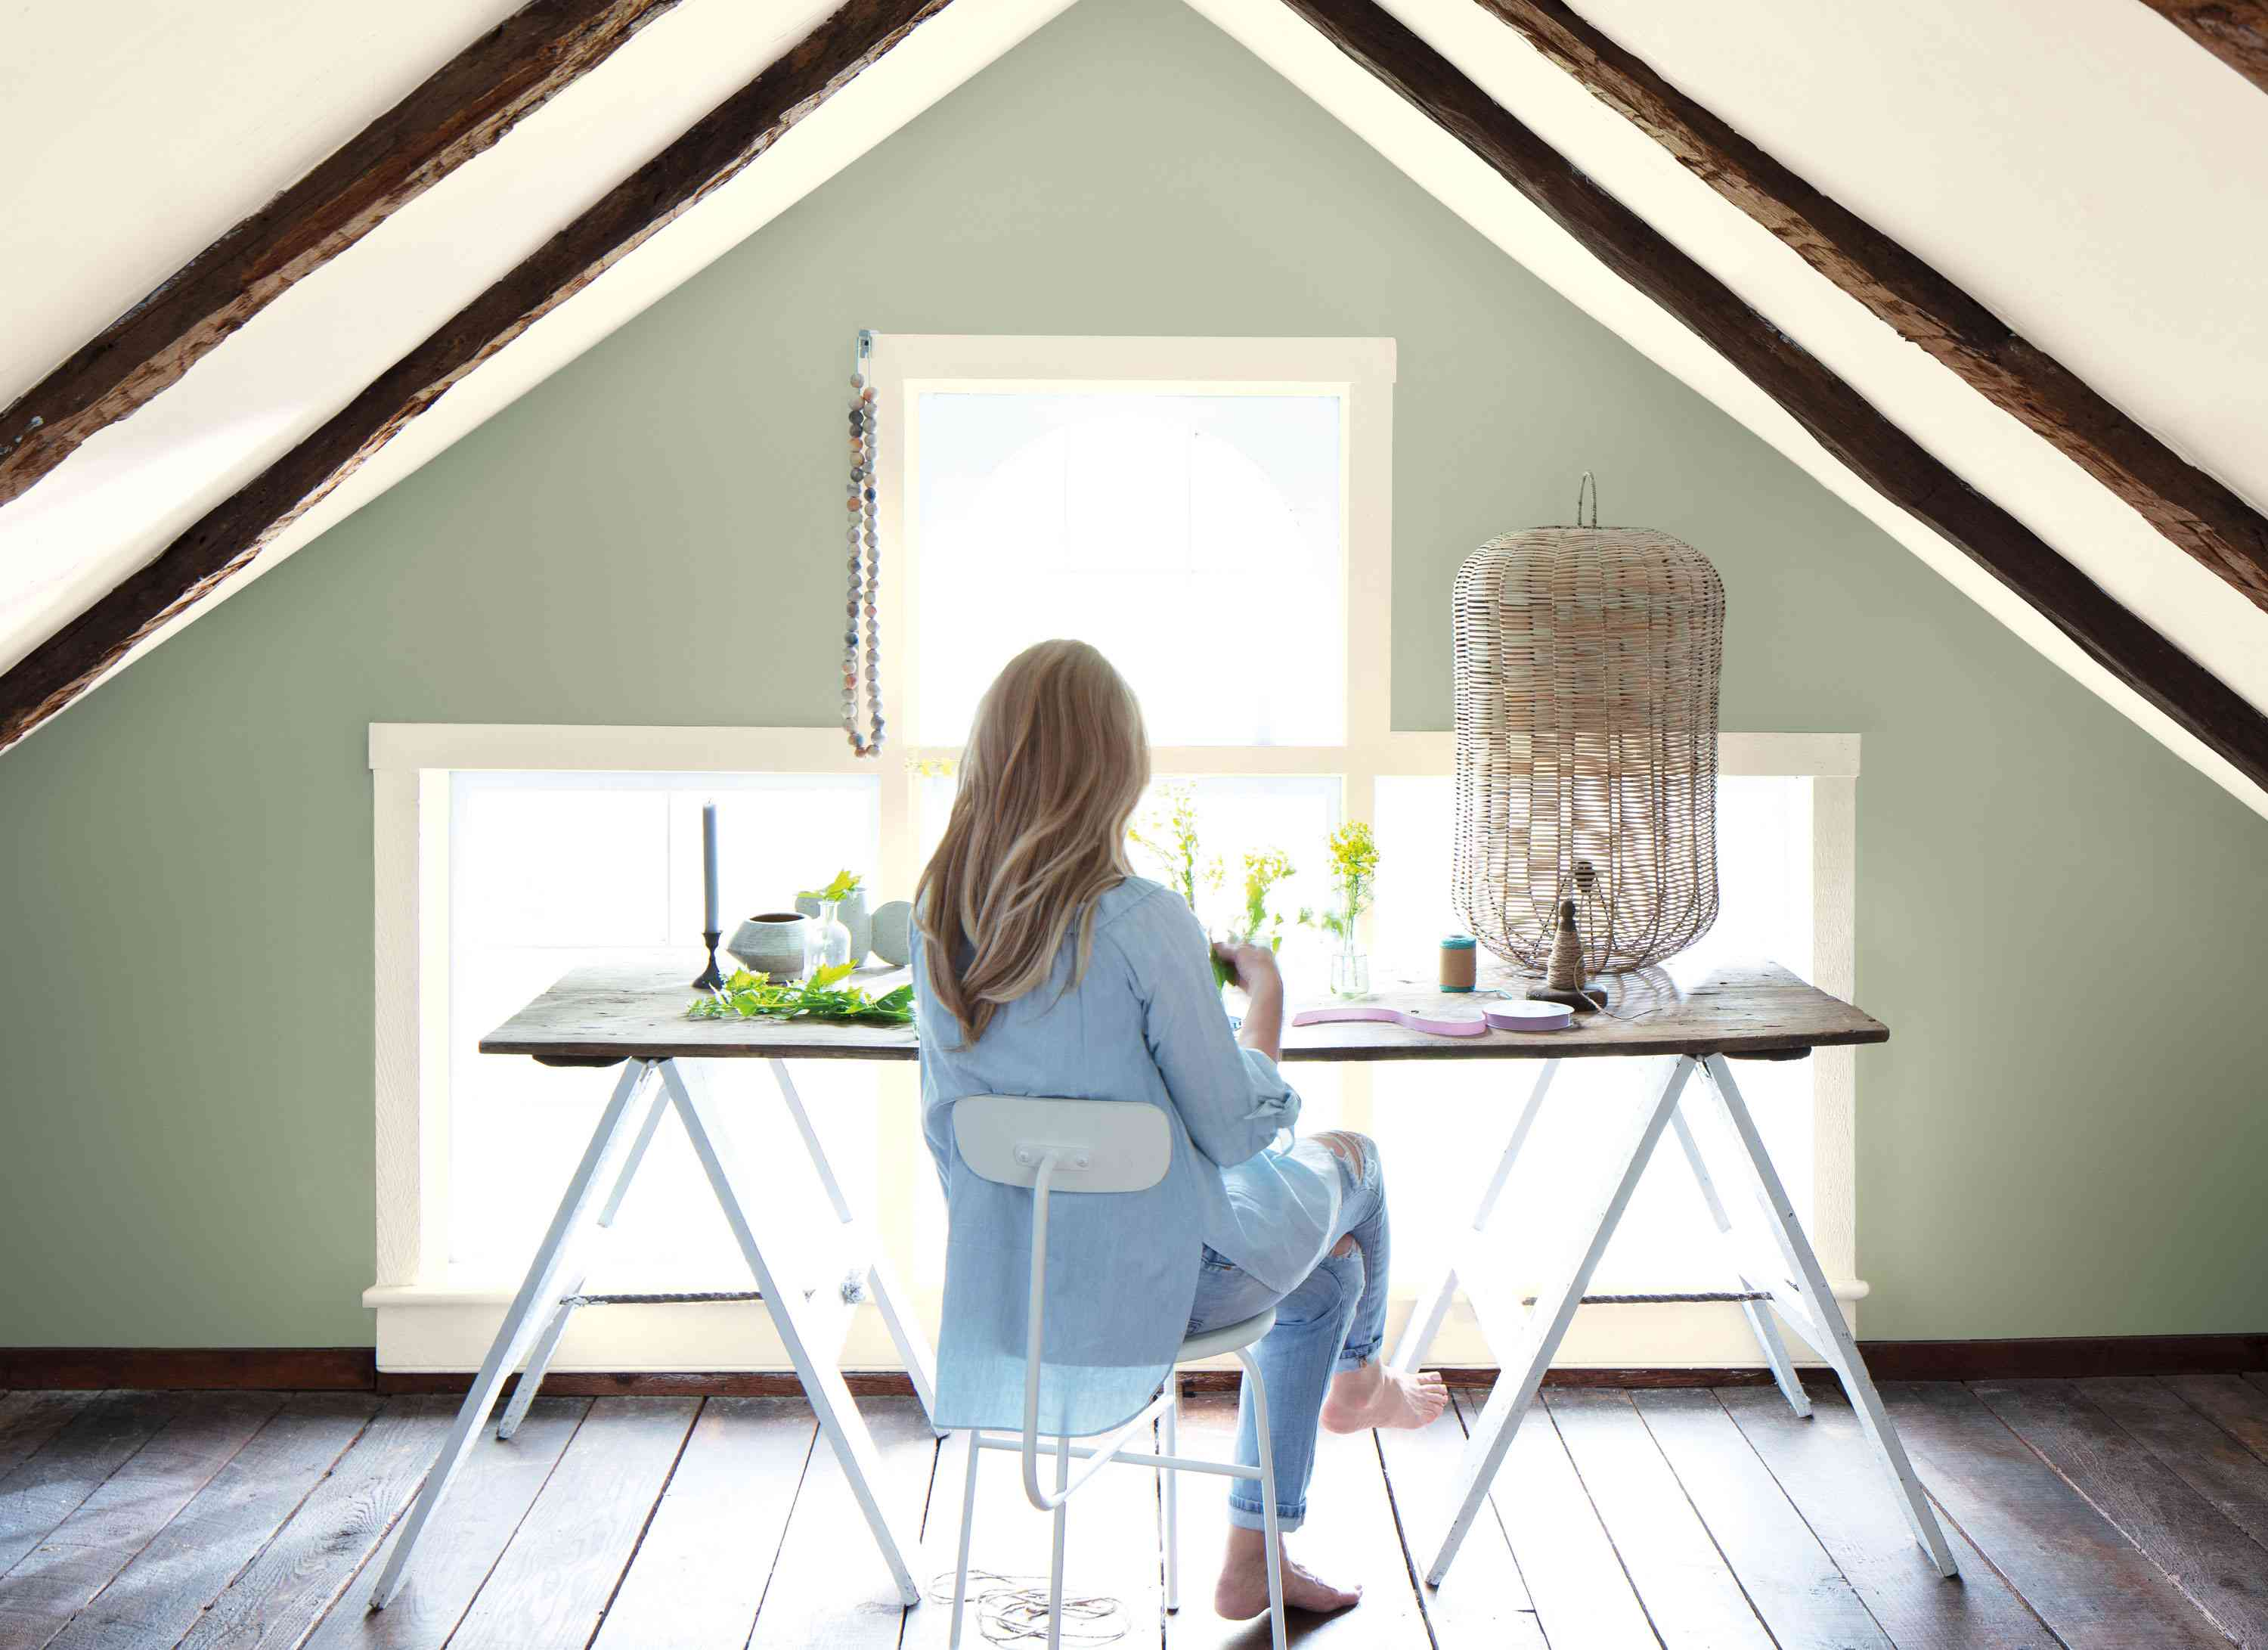 Benjamin Moore Color of the Year 2022 October Mist in home office space